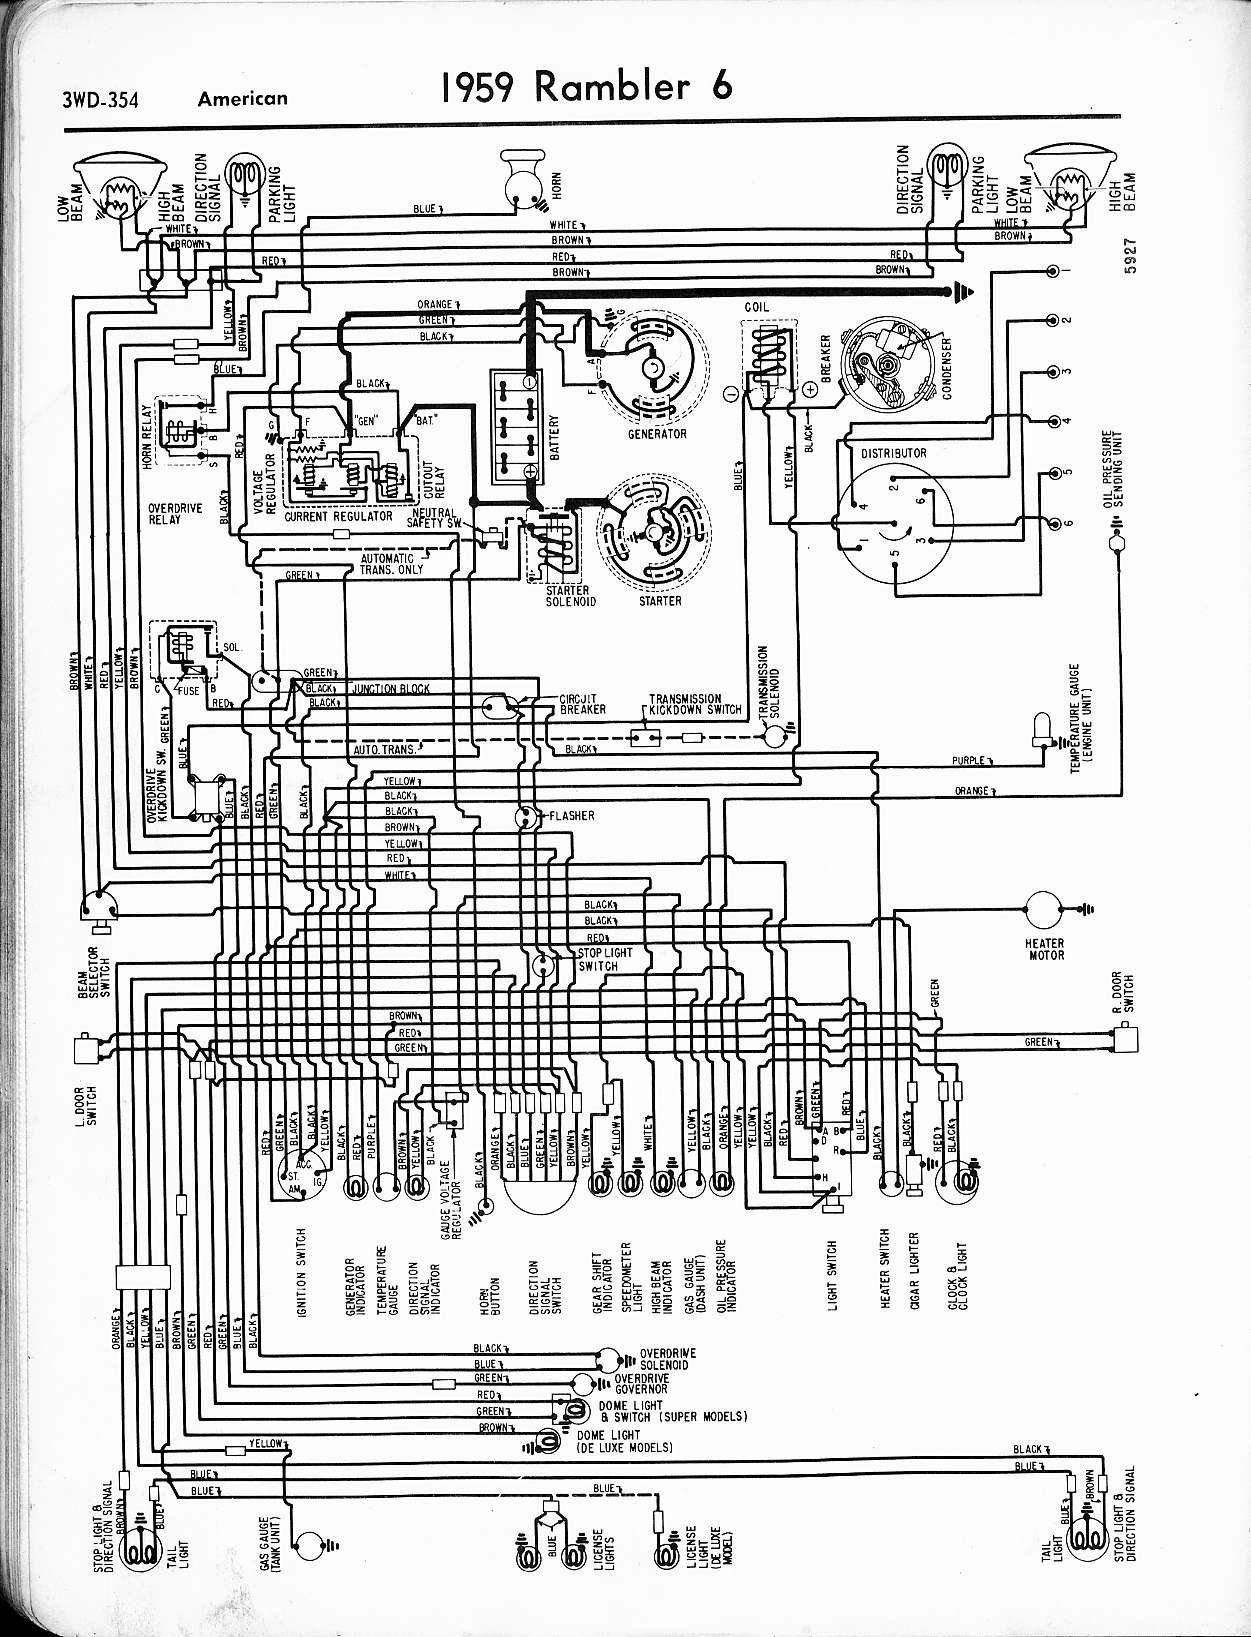 Pleasant Clic Car Wiring Harness Wiring Diagram Wiring Digital Resources Indicompassionincorg